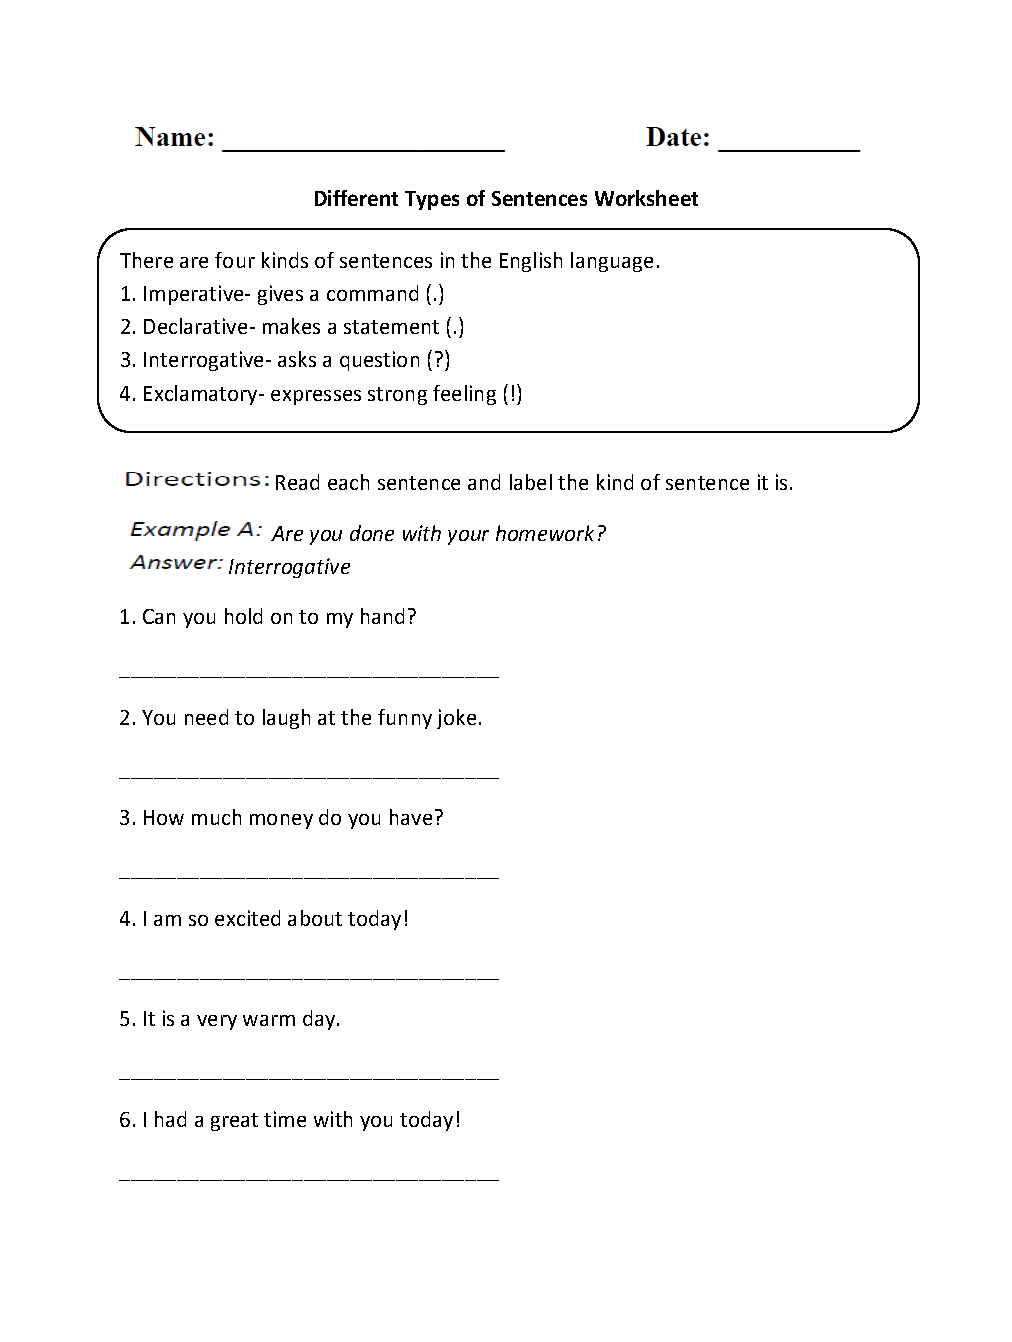 Worksheets Four Types Of Sentences Worksheet sentences worksheets types of different worksheet